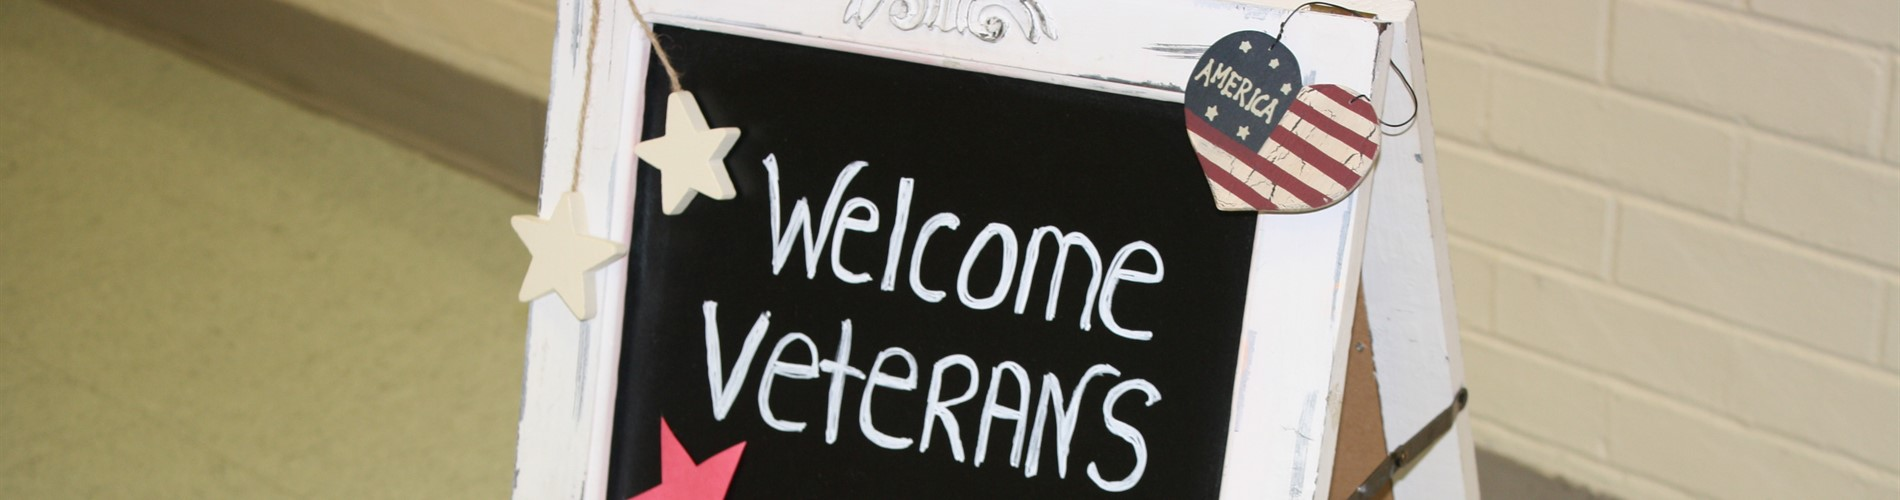 Sign that says Welcome Veterans